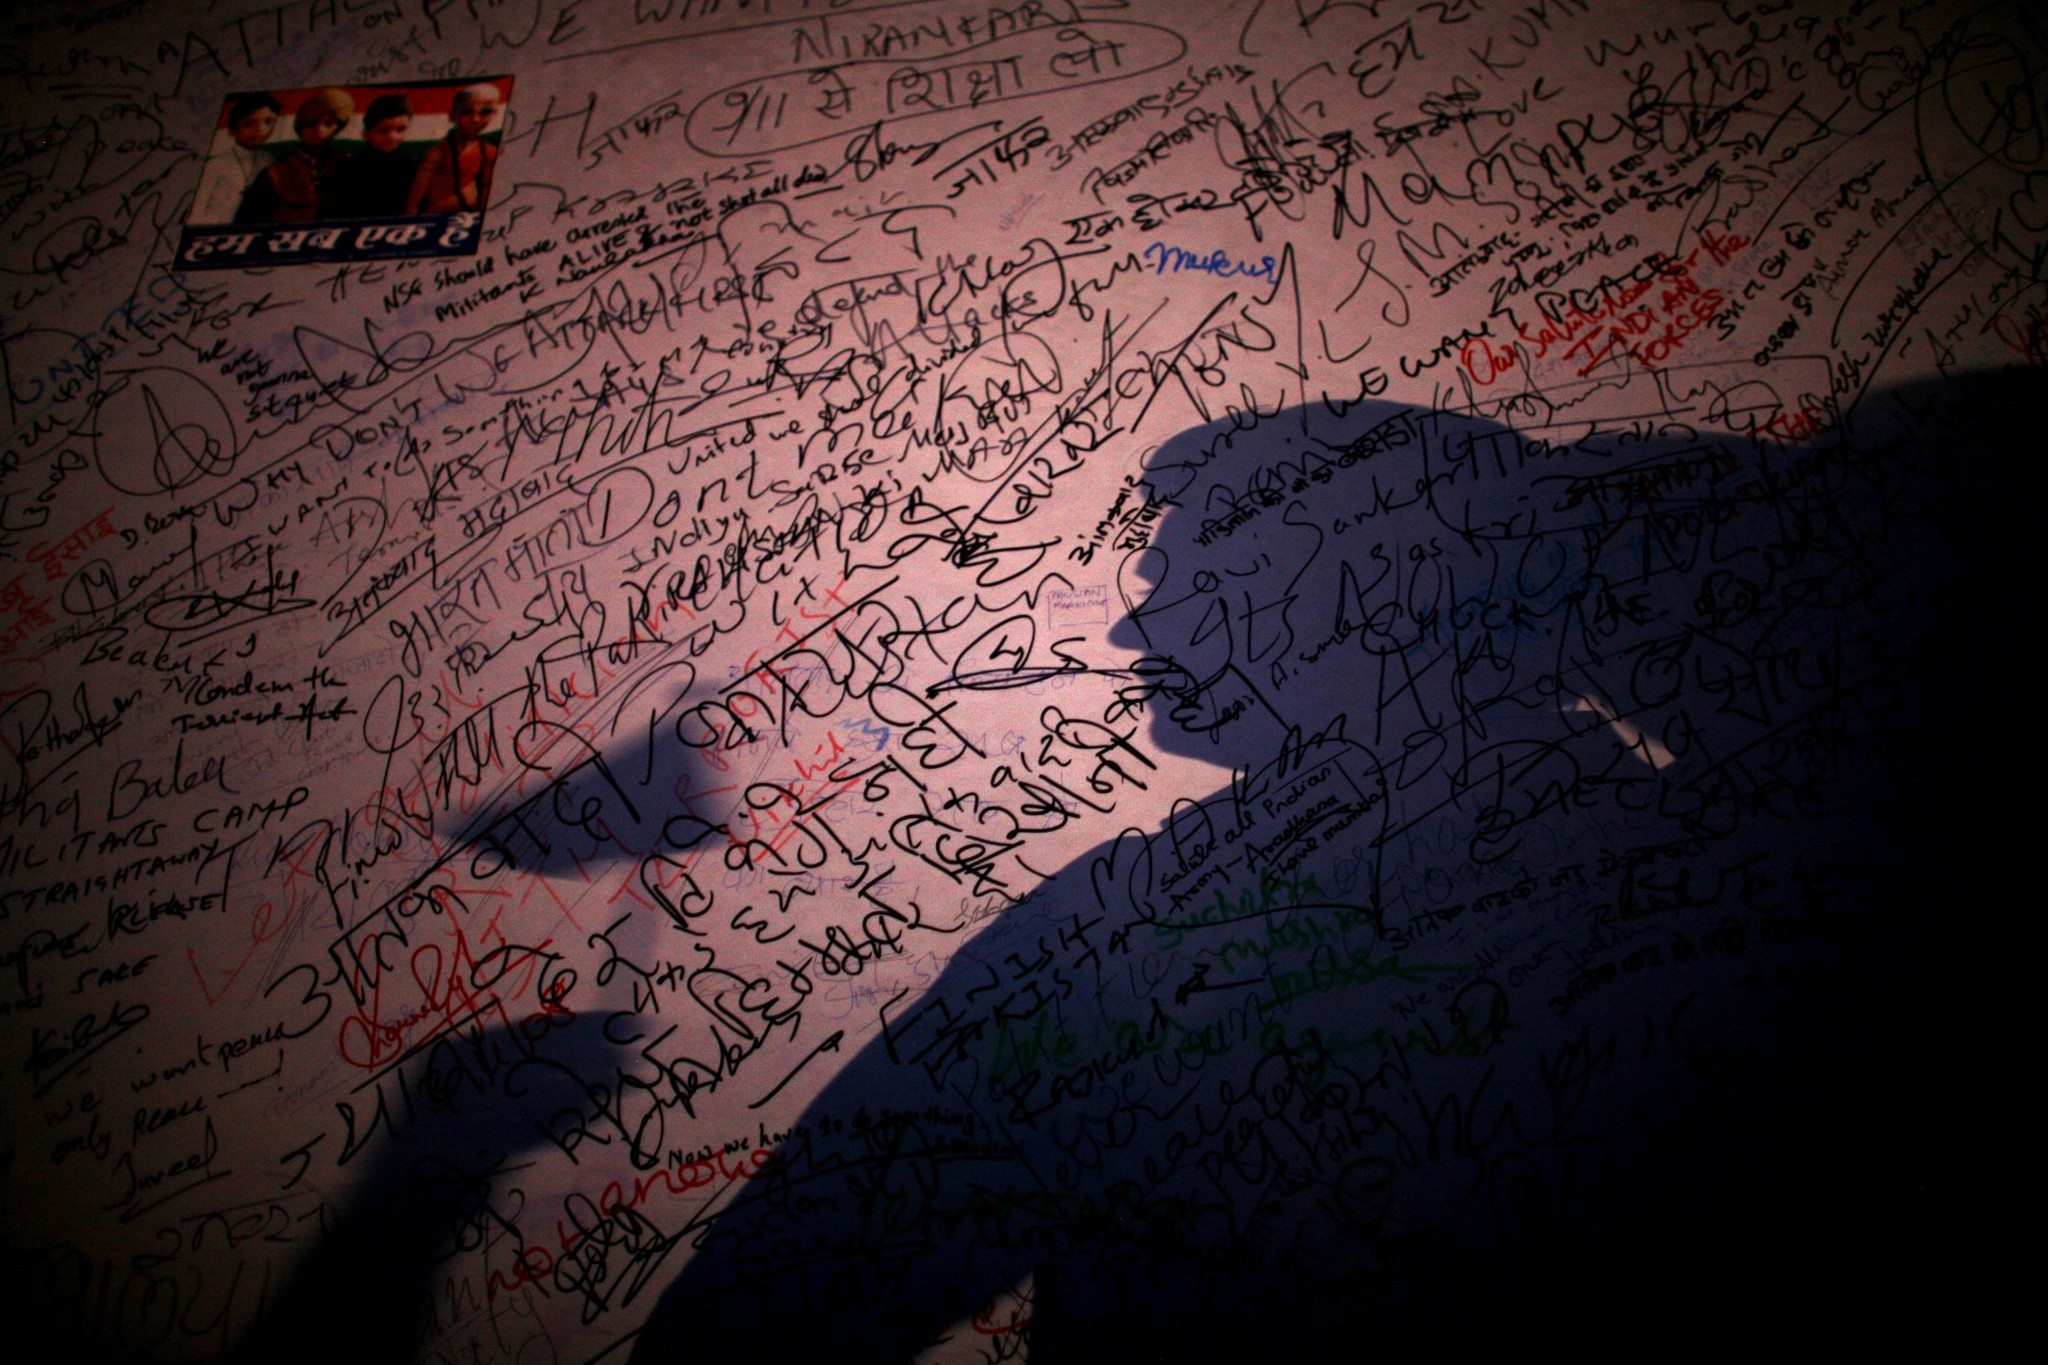 MUMBAI (BOMBAY), INDIA - DECEMBER 03: (ISRAEL OUT) An Indian man's silhouette is cast on a wall covered with signatures written in support of the victims of the recent terrorist attacks, as thousands of Mumbaikars take part in a mass demonstration march, near the Taj Mahal Palace & Tower Hotel, on December, 03, 2008 in Mumbai, India. Two bombs were discovered and defused earlier today by Mumbai police at a train station, the Chhatrapati Shivaji Terminus, which was one of the locations attacked by the terrorists. The attacks left almost 200 hundred dead and injured over 300 people. (Photo by Uriel Sinai/Getty Images)